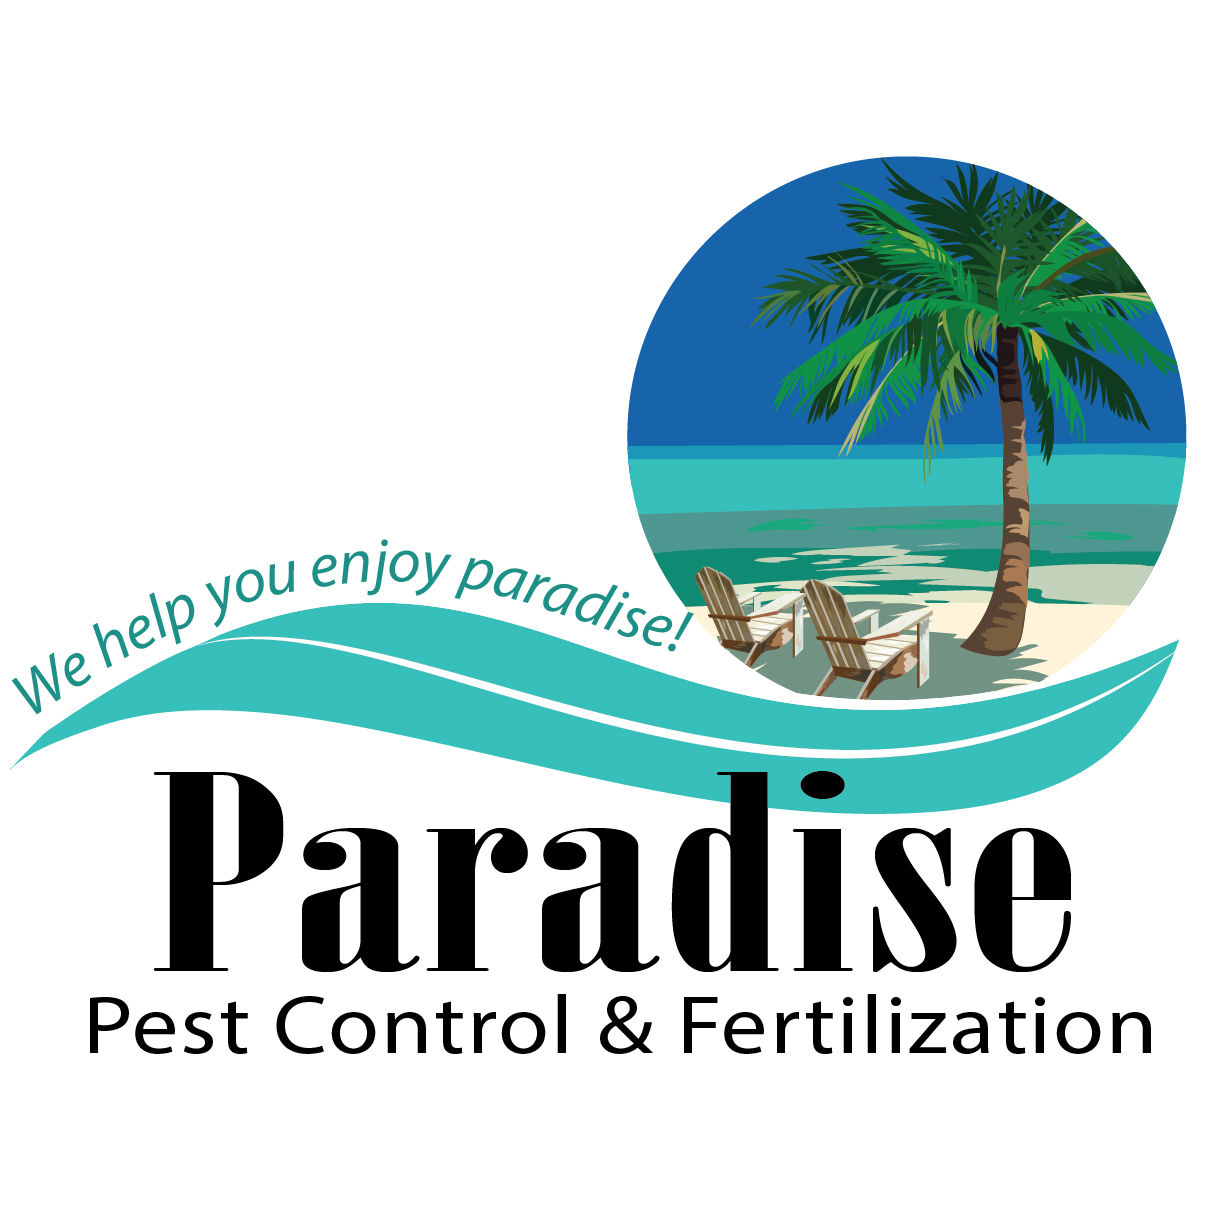 Paradise Pest Control & Fertilization